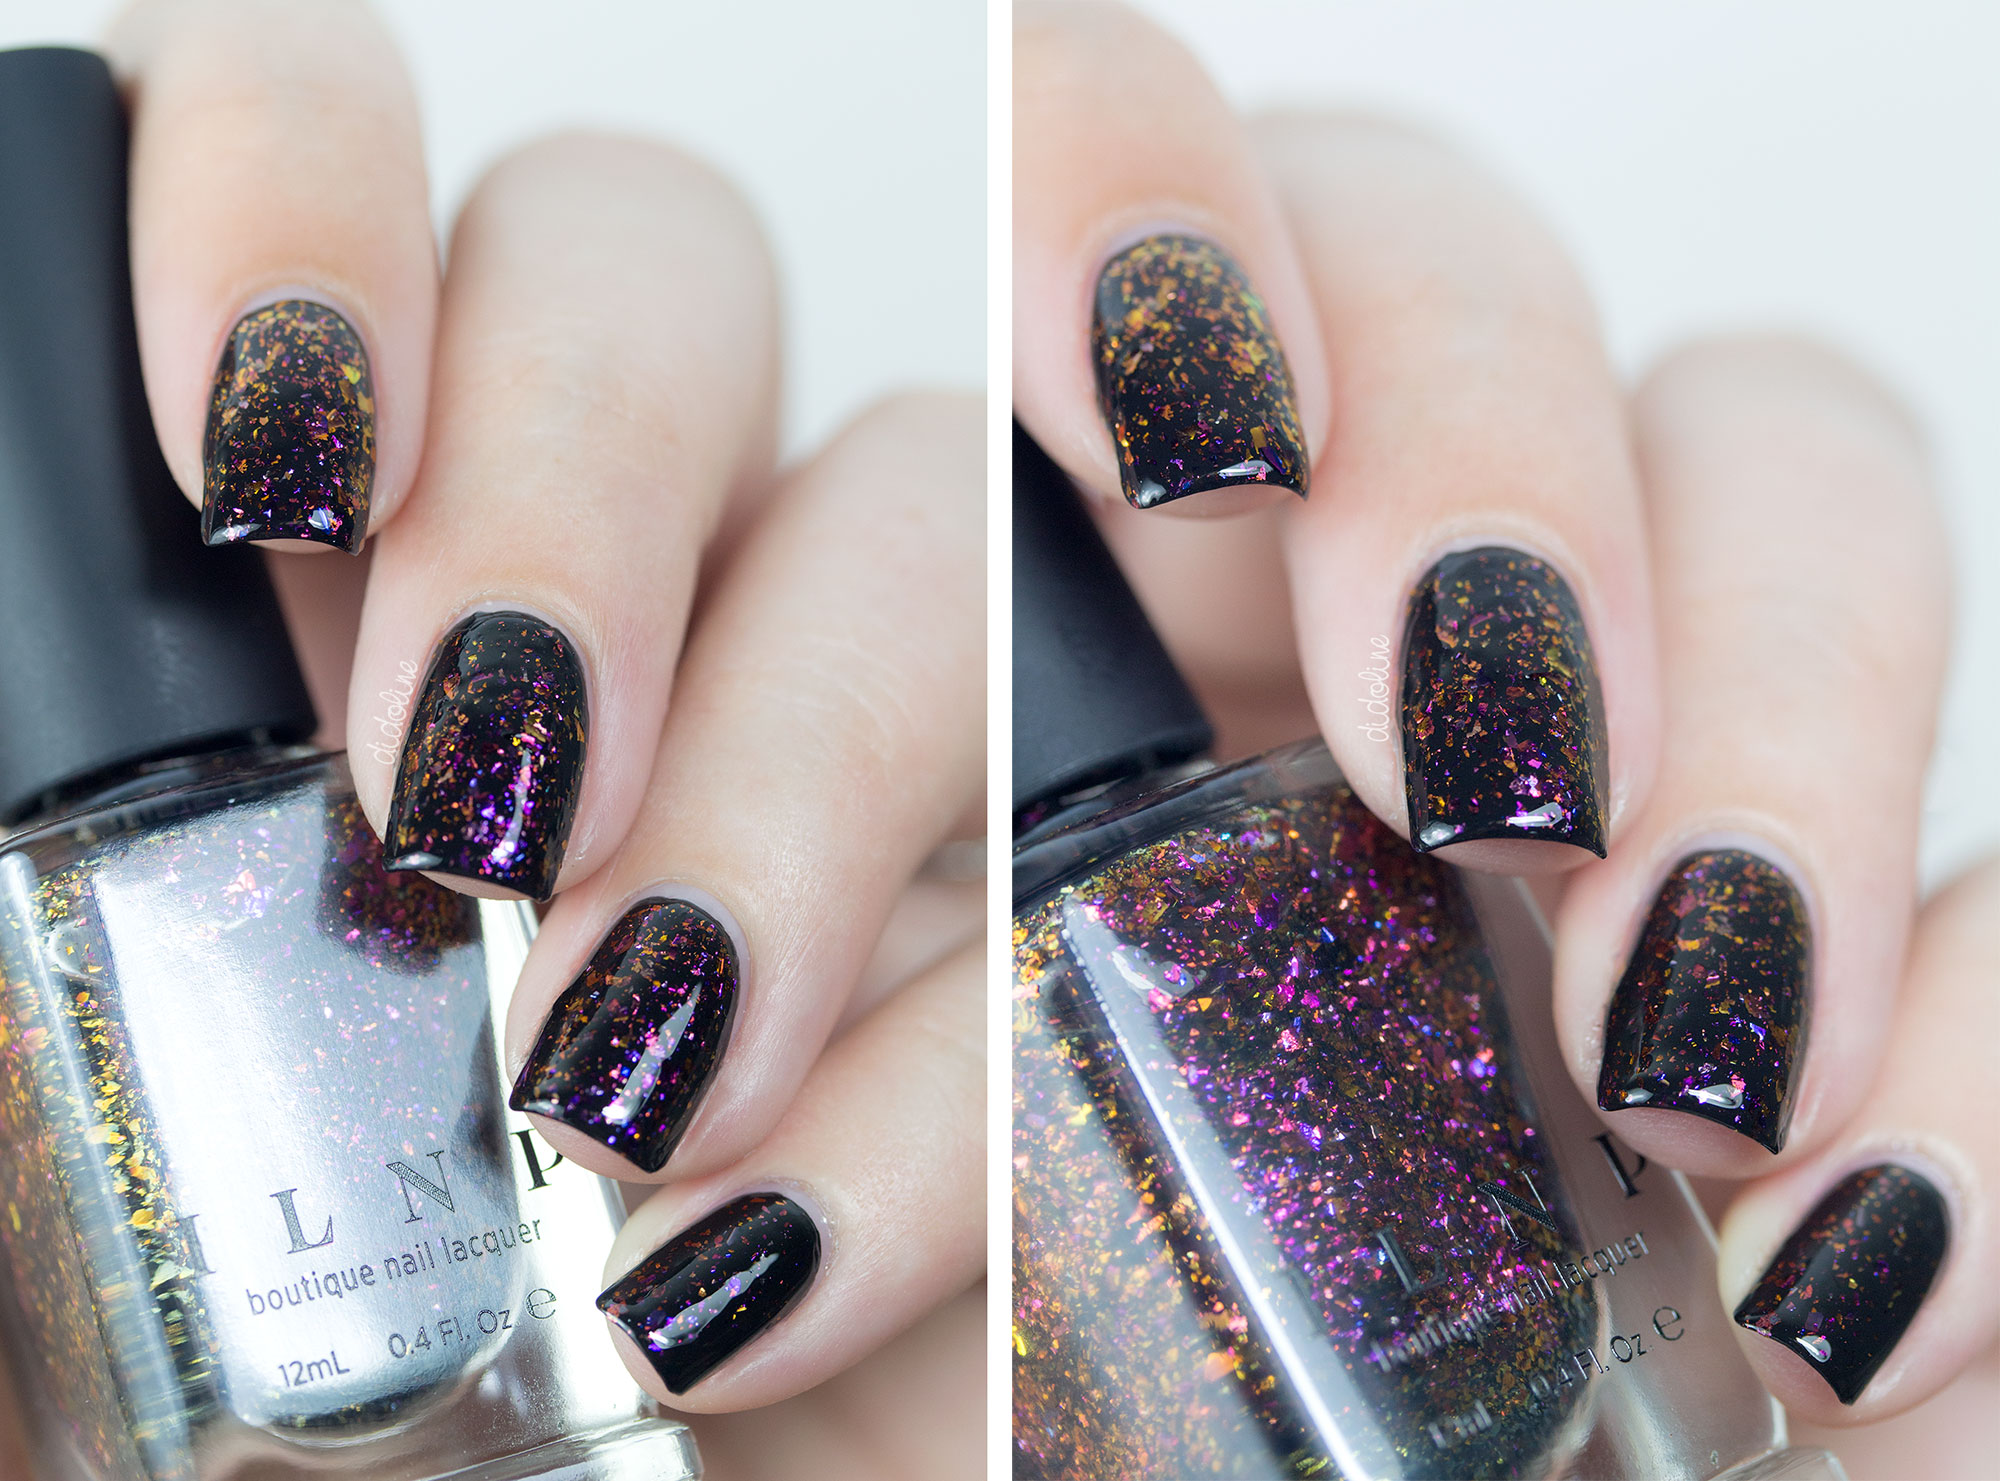 ILNP - The Road To Awe